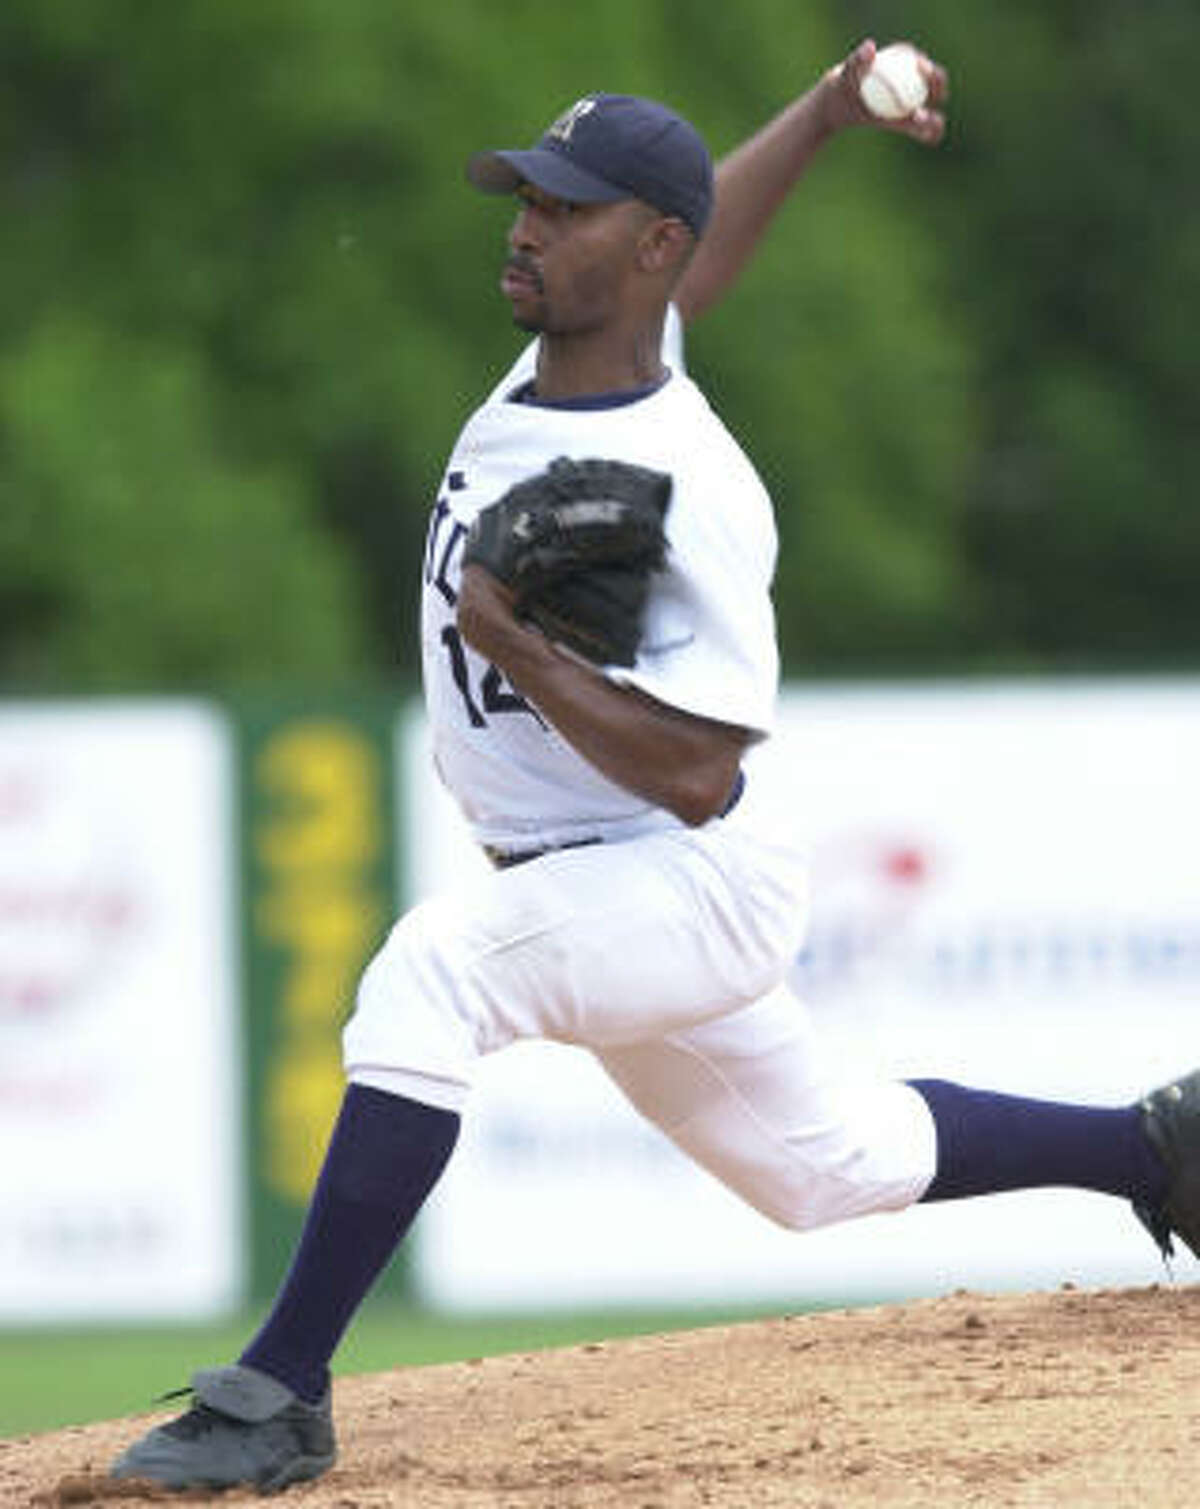 Kenny Baugh , RHP. Years: 1998-2001. The case for: Beyond his superior athleticism - he fielded his position wonderfully and shut down the opposition's running game - Baugh was a tough-willed competitor who routinely delivered in the clutch. His 41 wins rank second in program history, but his selflessness exceeded any statistical metric.